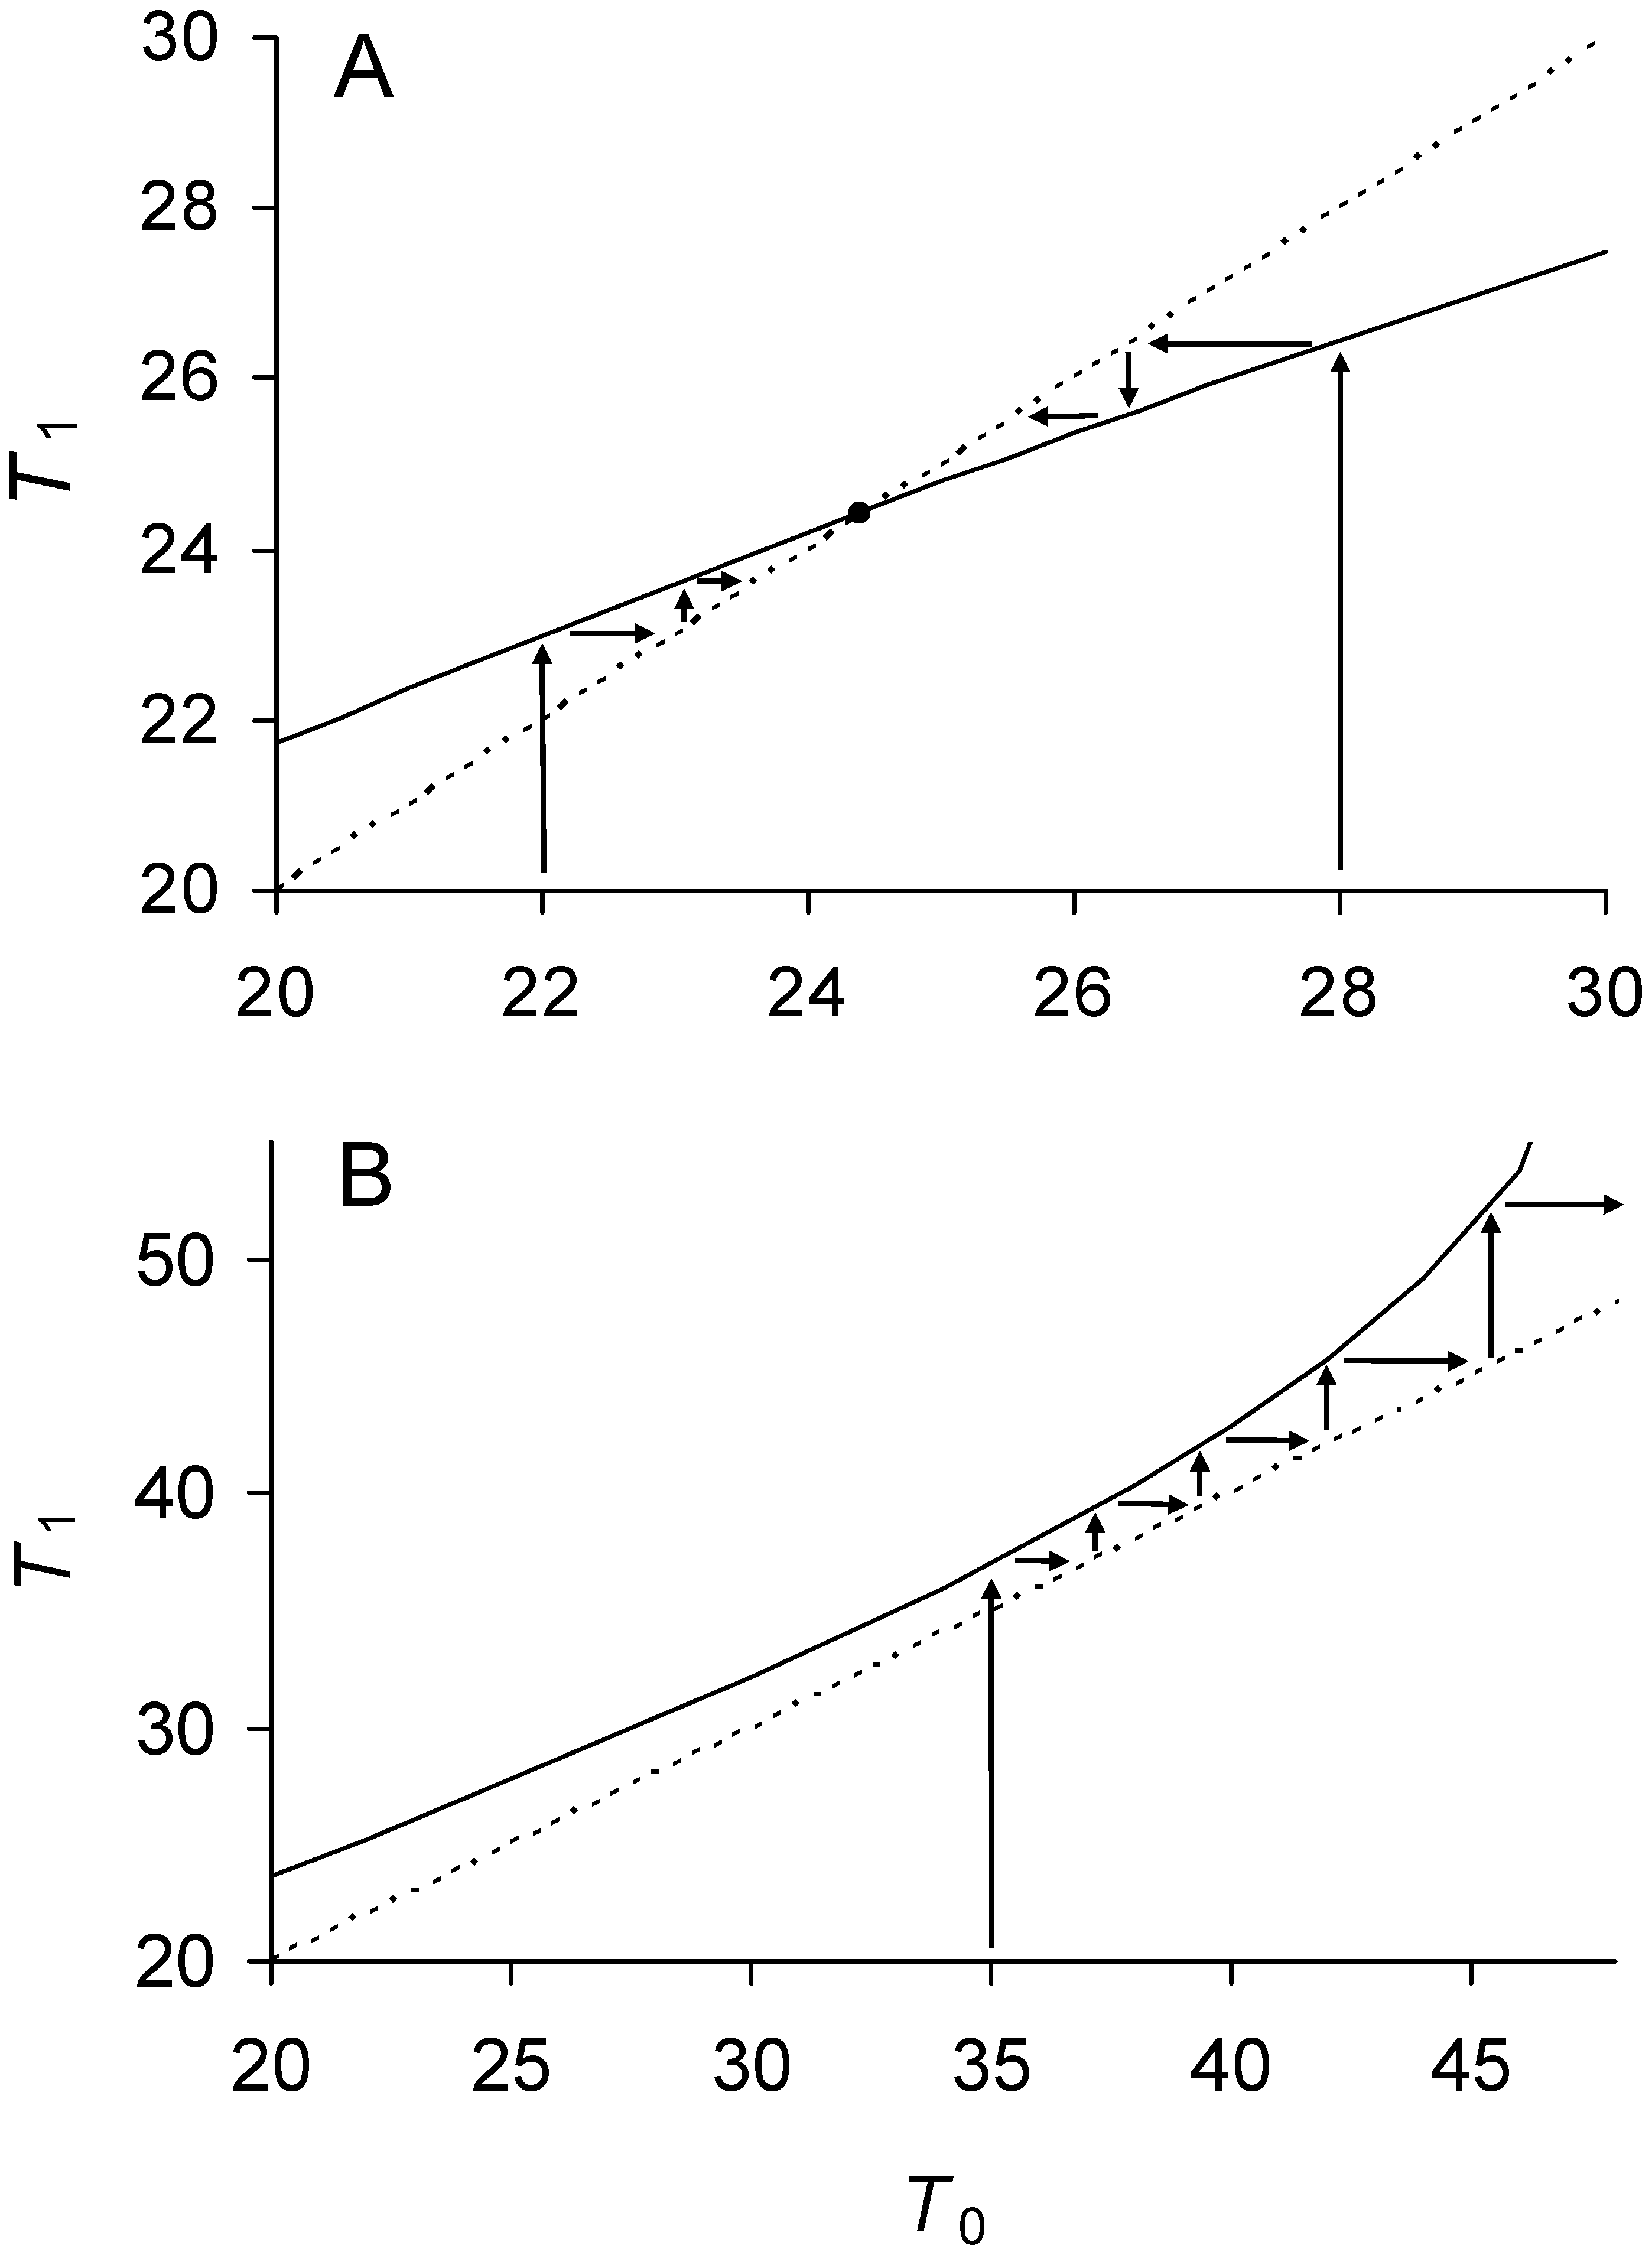 Phase plot of relationship between doubling times of daughter and mother cells when division is symmetrical.